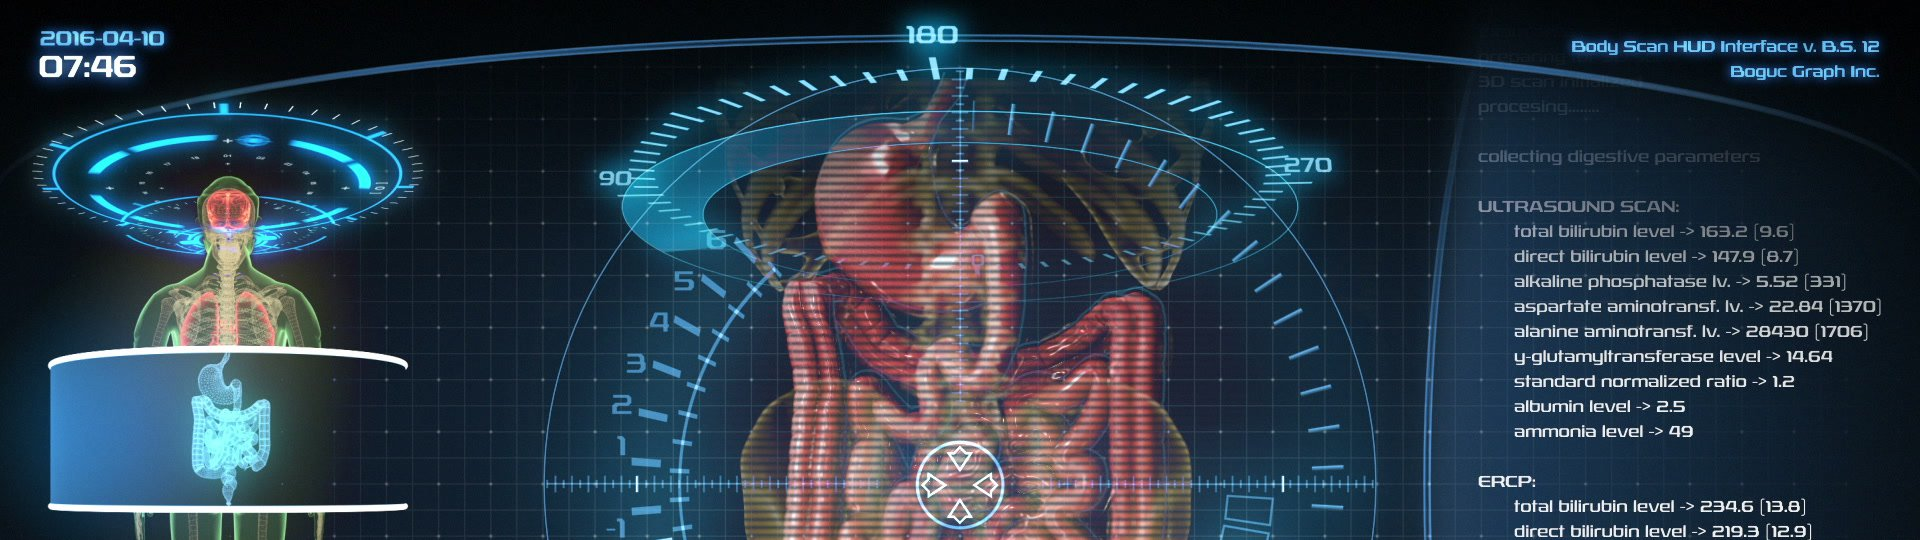 Futuristic digestive system scan | Holographic medical application interface - ID:18564